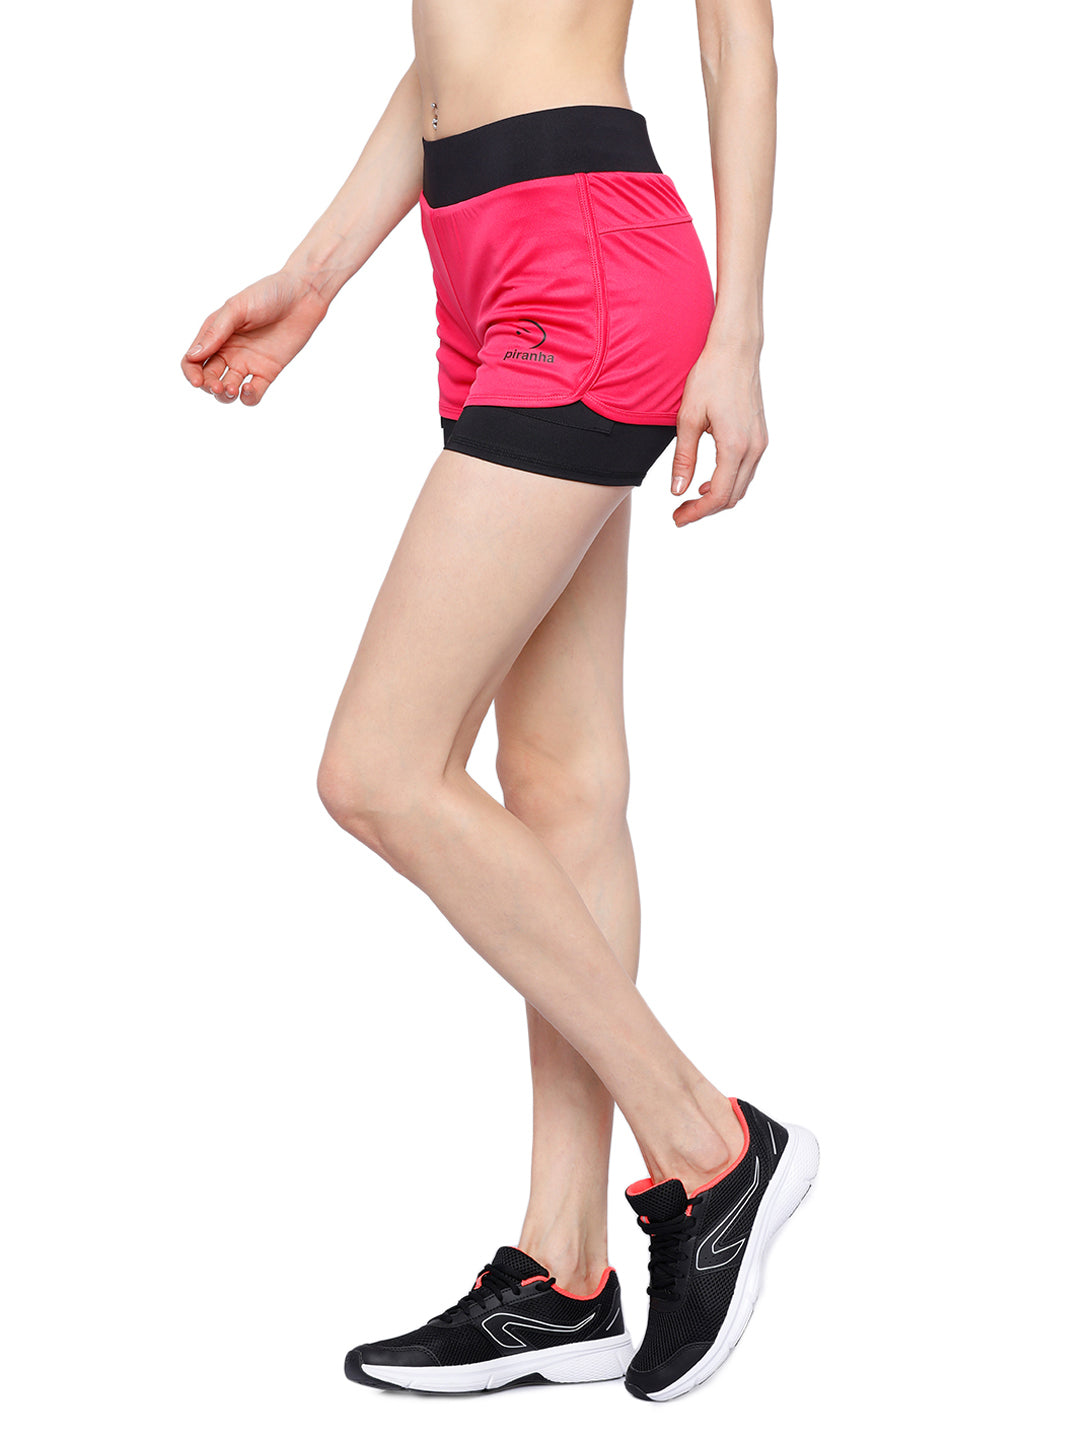 Piranha Women's Pink Running Shorts - RS92